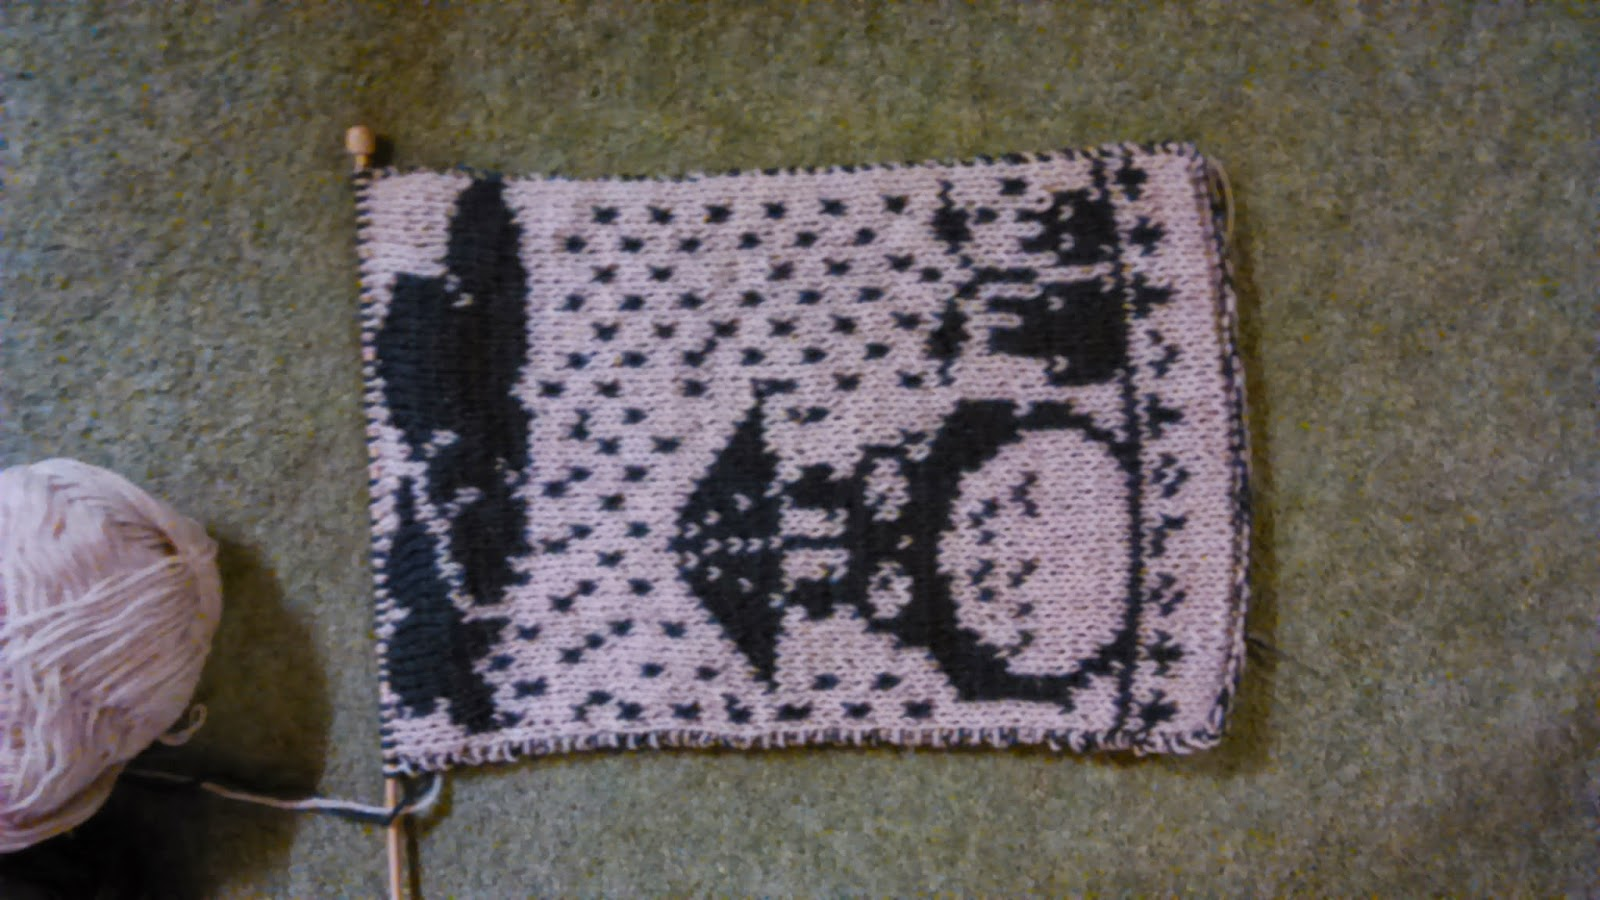 My Adventures in Knitting: Double Knitting Totoro Scarf